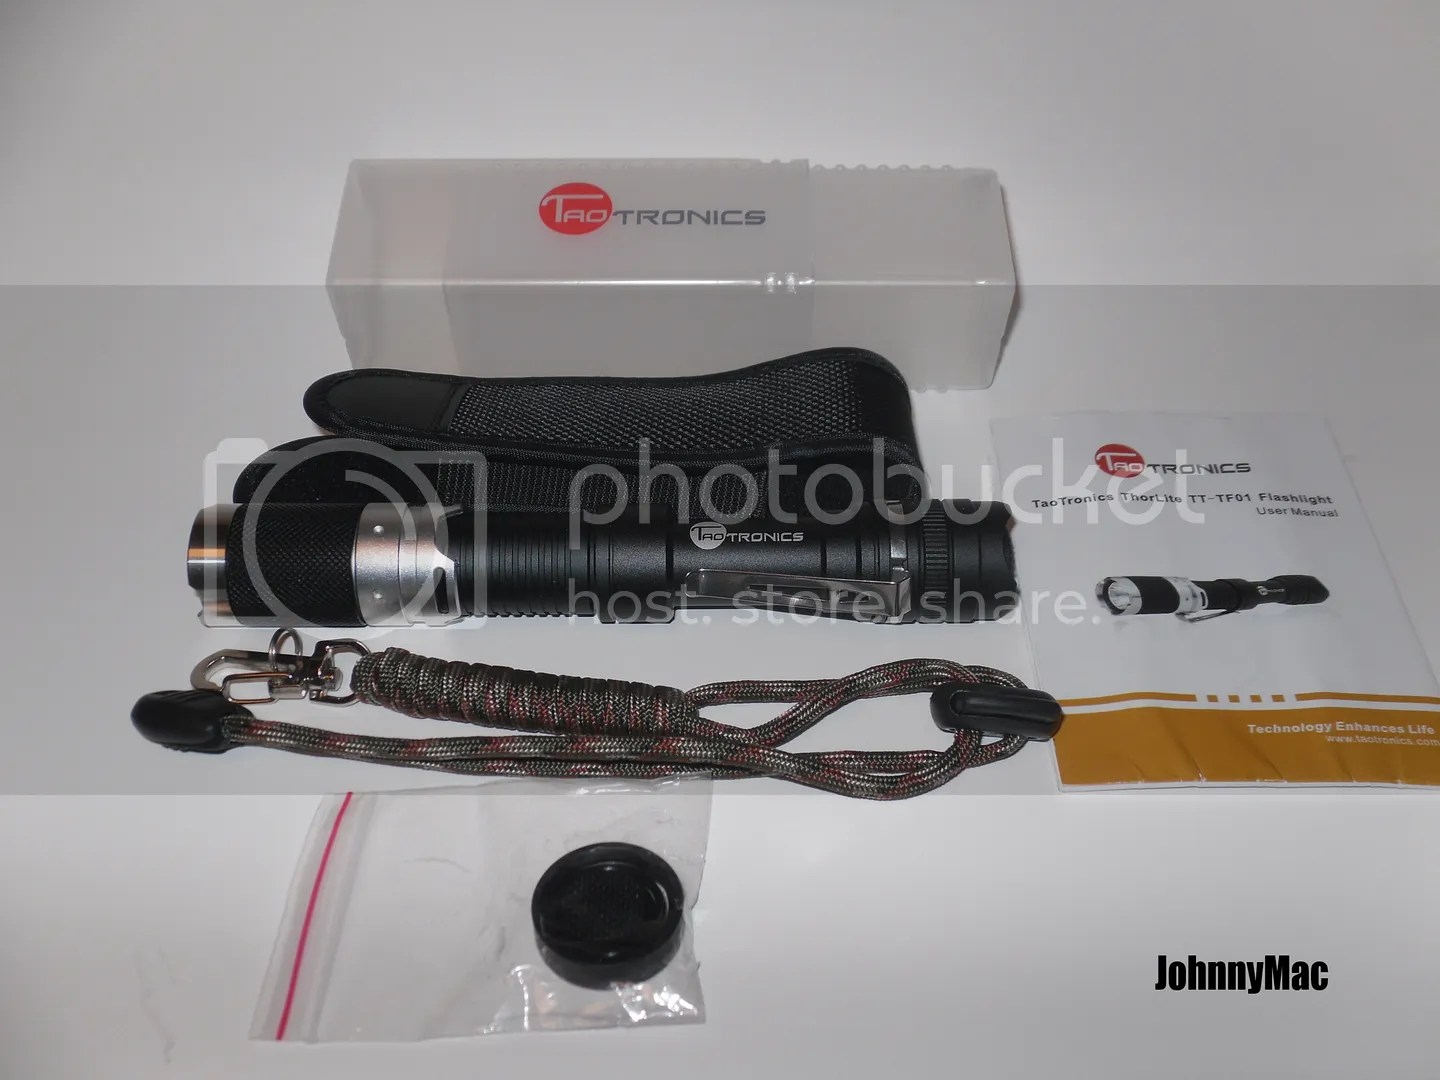 Packaged item & accessories photo 007_zps0a623e9b.png